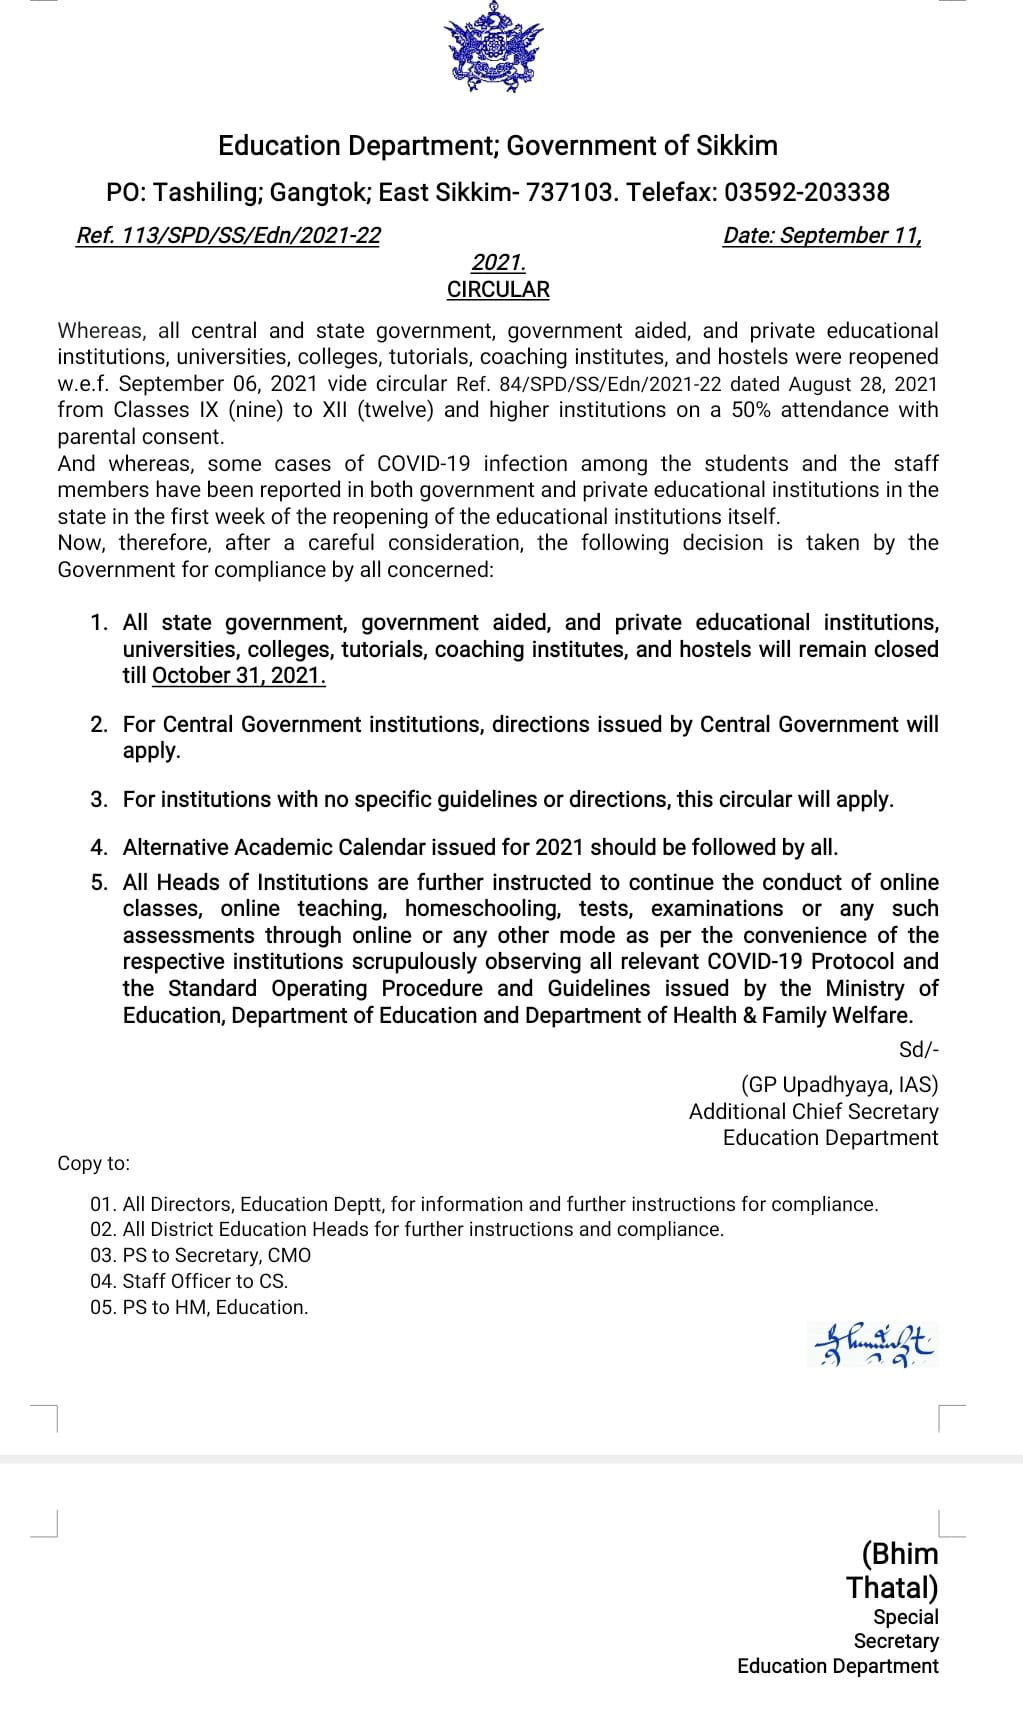 Circular from Education Department, Government of Sikkim regarding closure of all educational institutions in the State till October 31, 2021